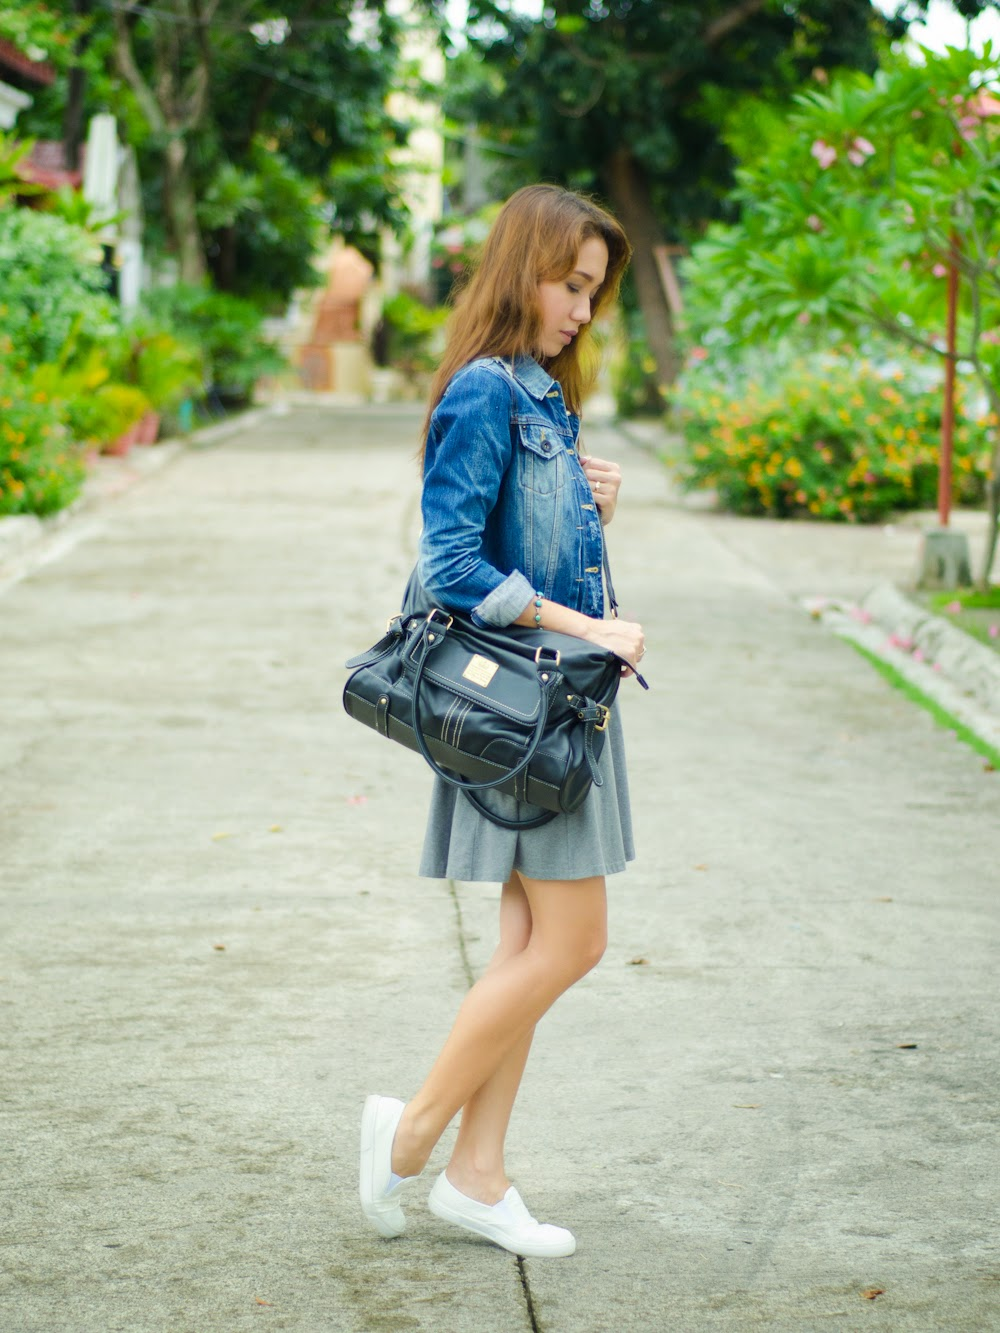 Skate shoes in cebu - Forever21 Dress And Topshop White Sneakers